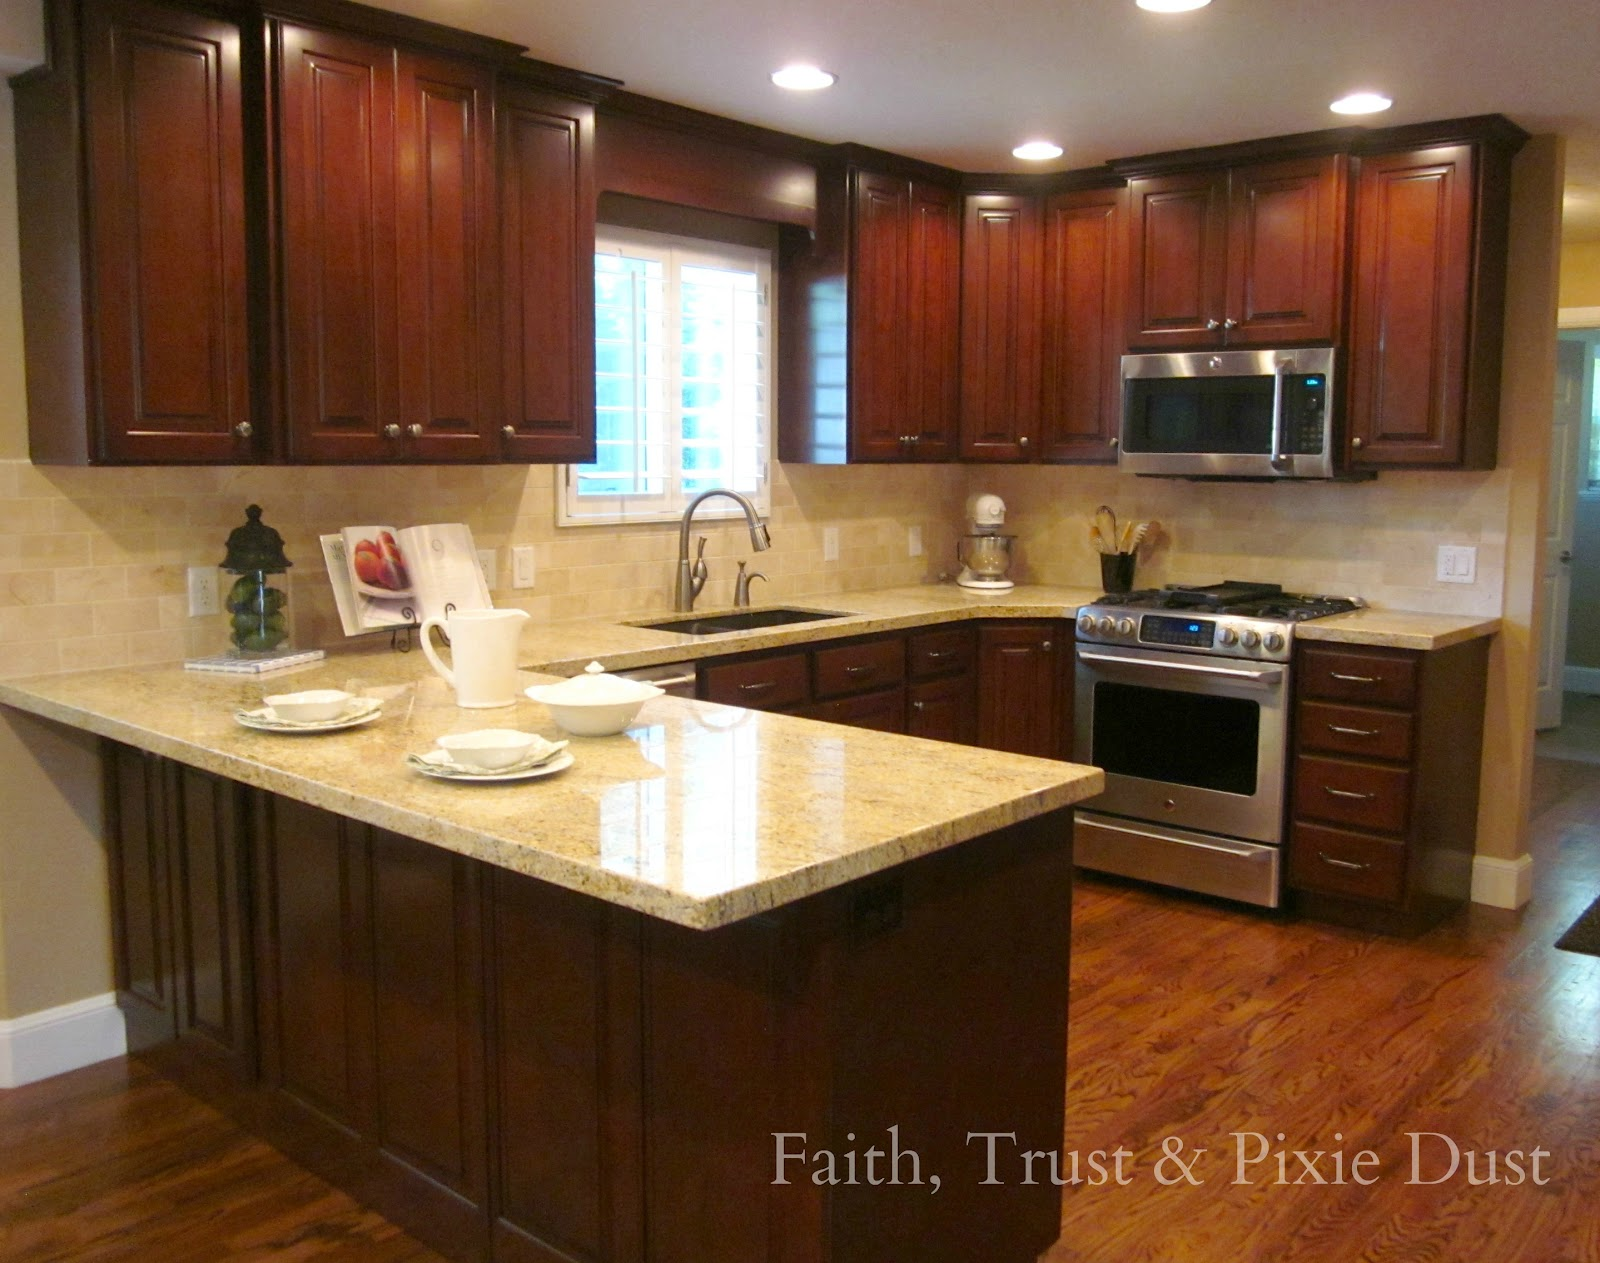 A Spectacular Kitchen Remodel Faith, Trust, And Pixie Dust: A Spectacular Kitchen  Remodel